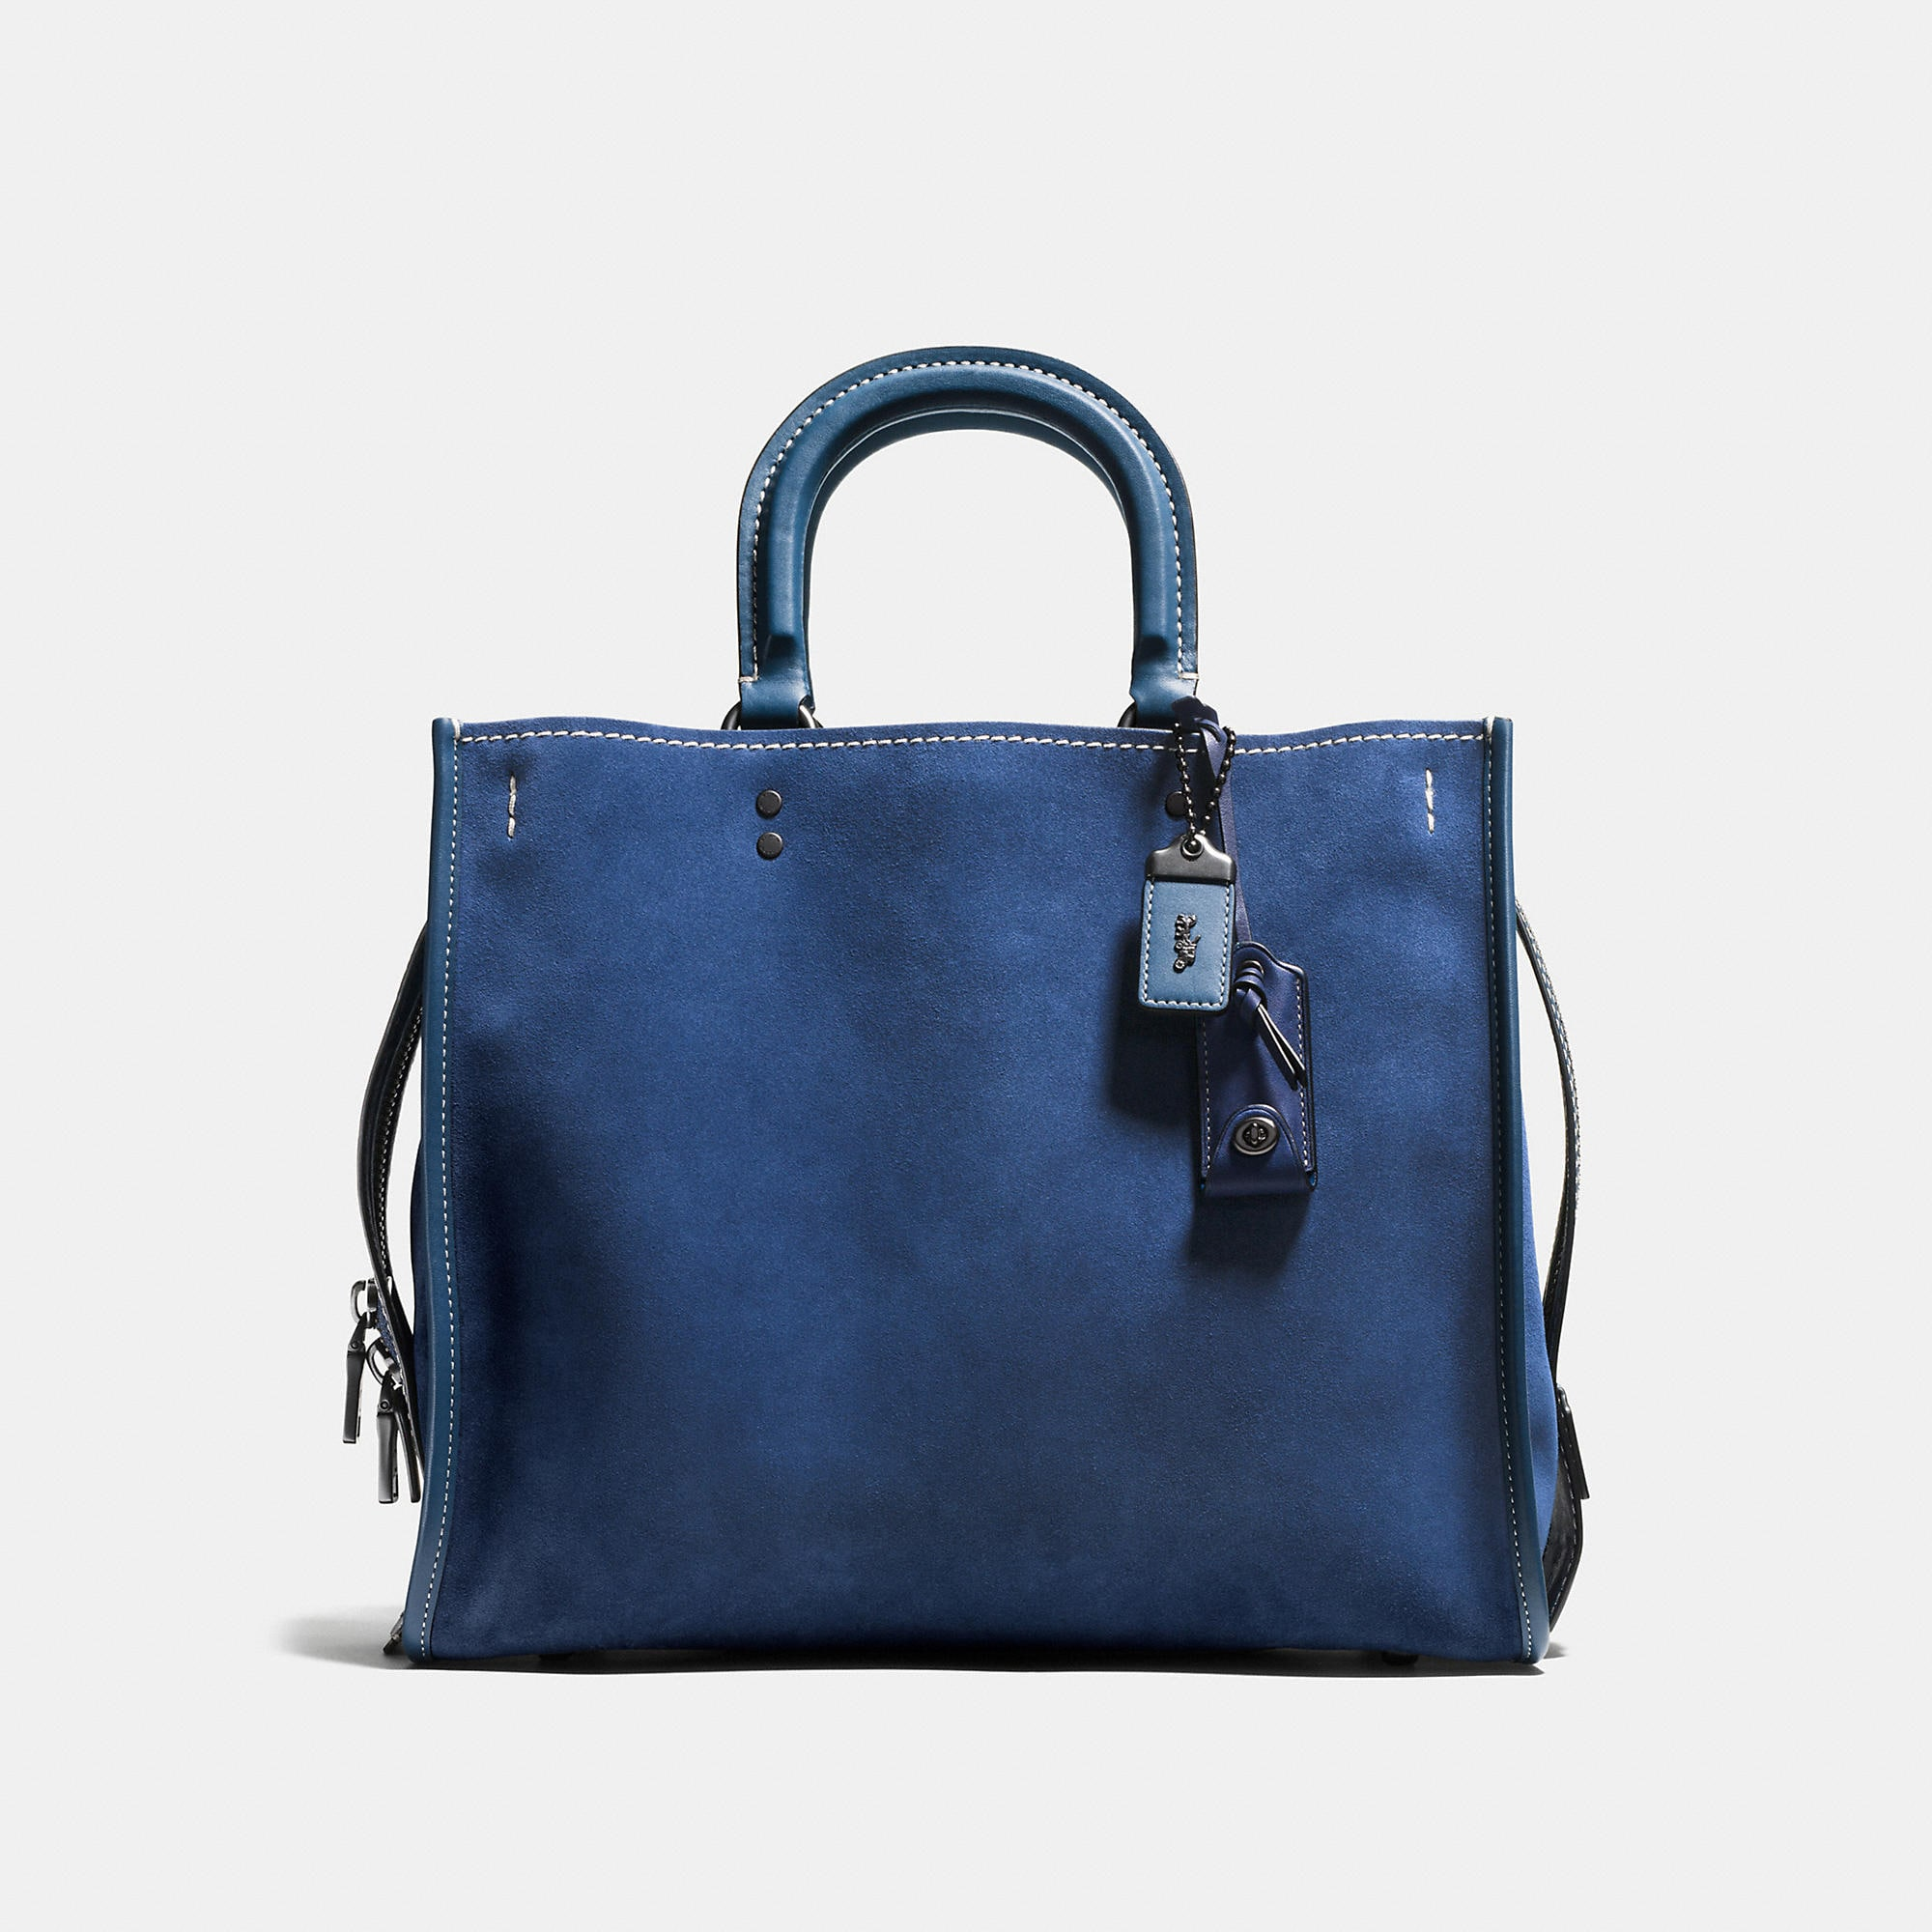 Coach Rogue Bag 36 In Suede